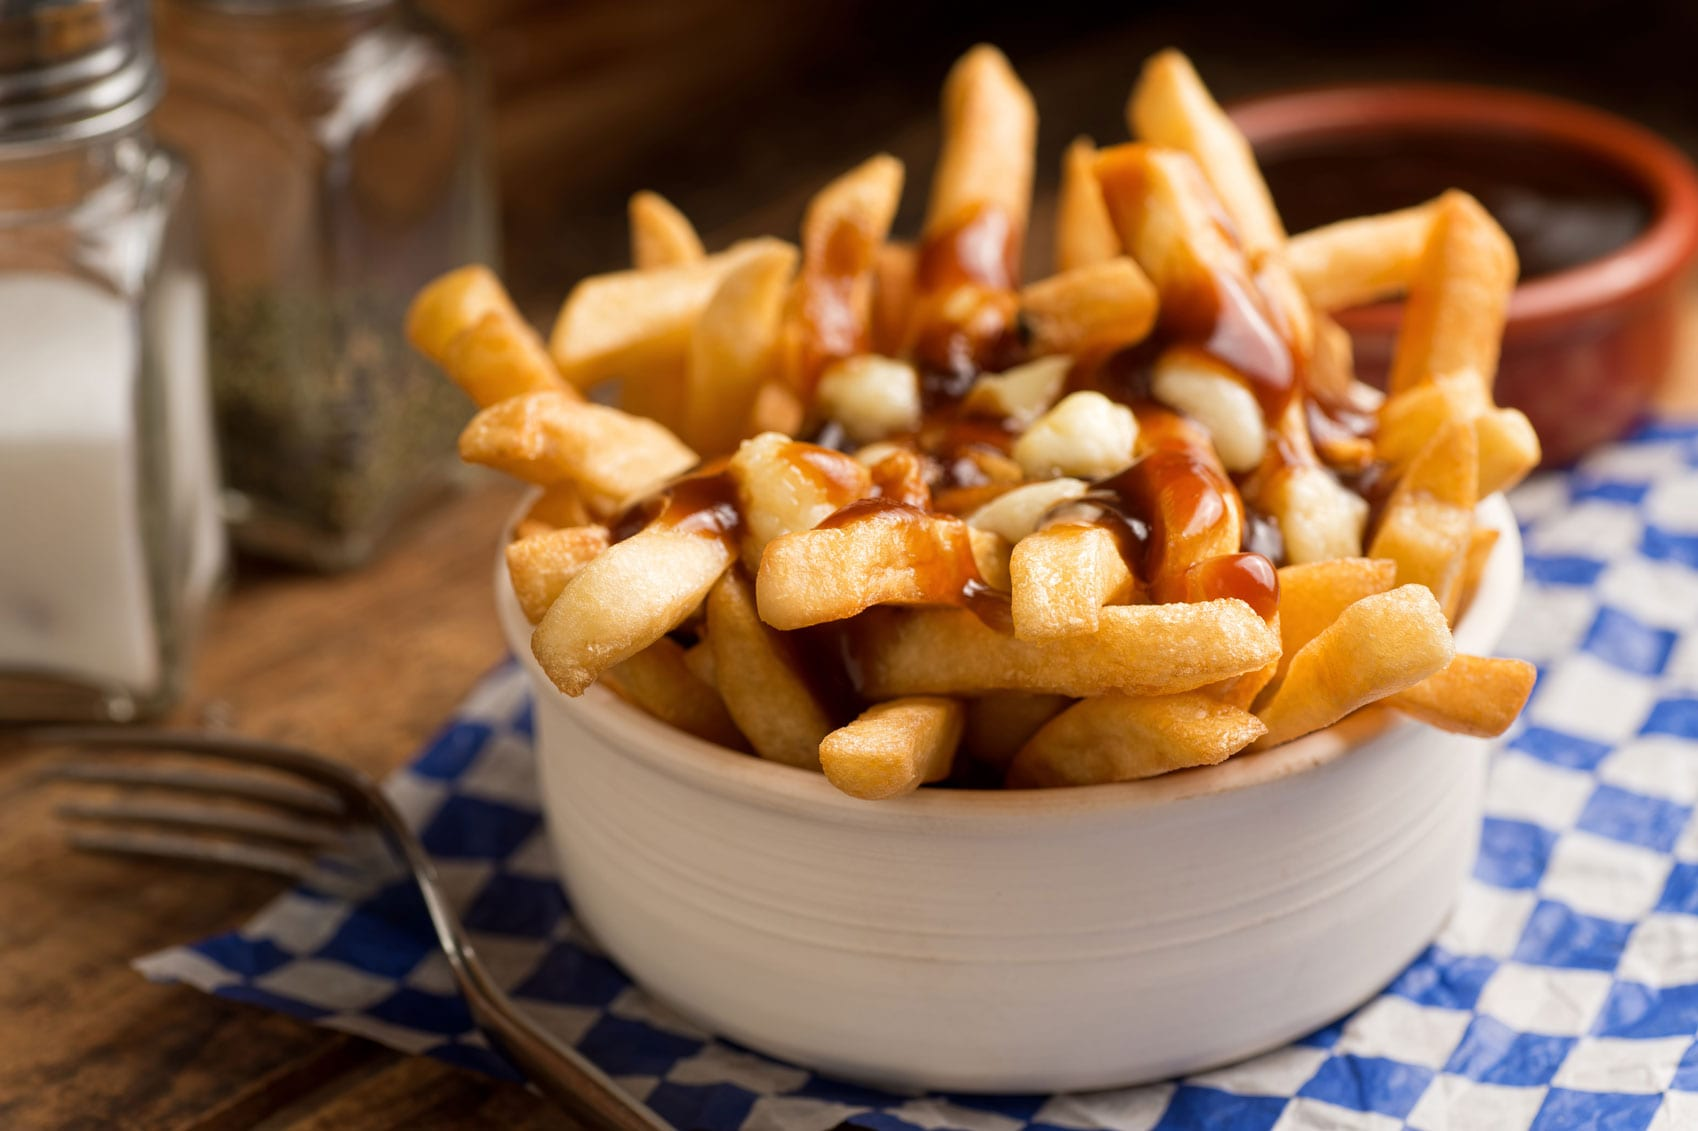 Dishes from around the world Poutine-White-Bowl-www.istockphoto.comgbphotoclose-up-photo-of-poutine-in-a-white-bowl-with-fork-gm452682759-30008216-Fudio